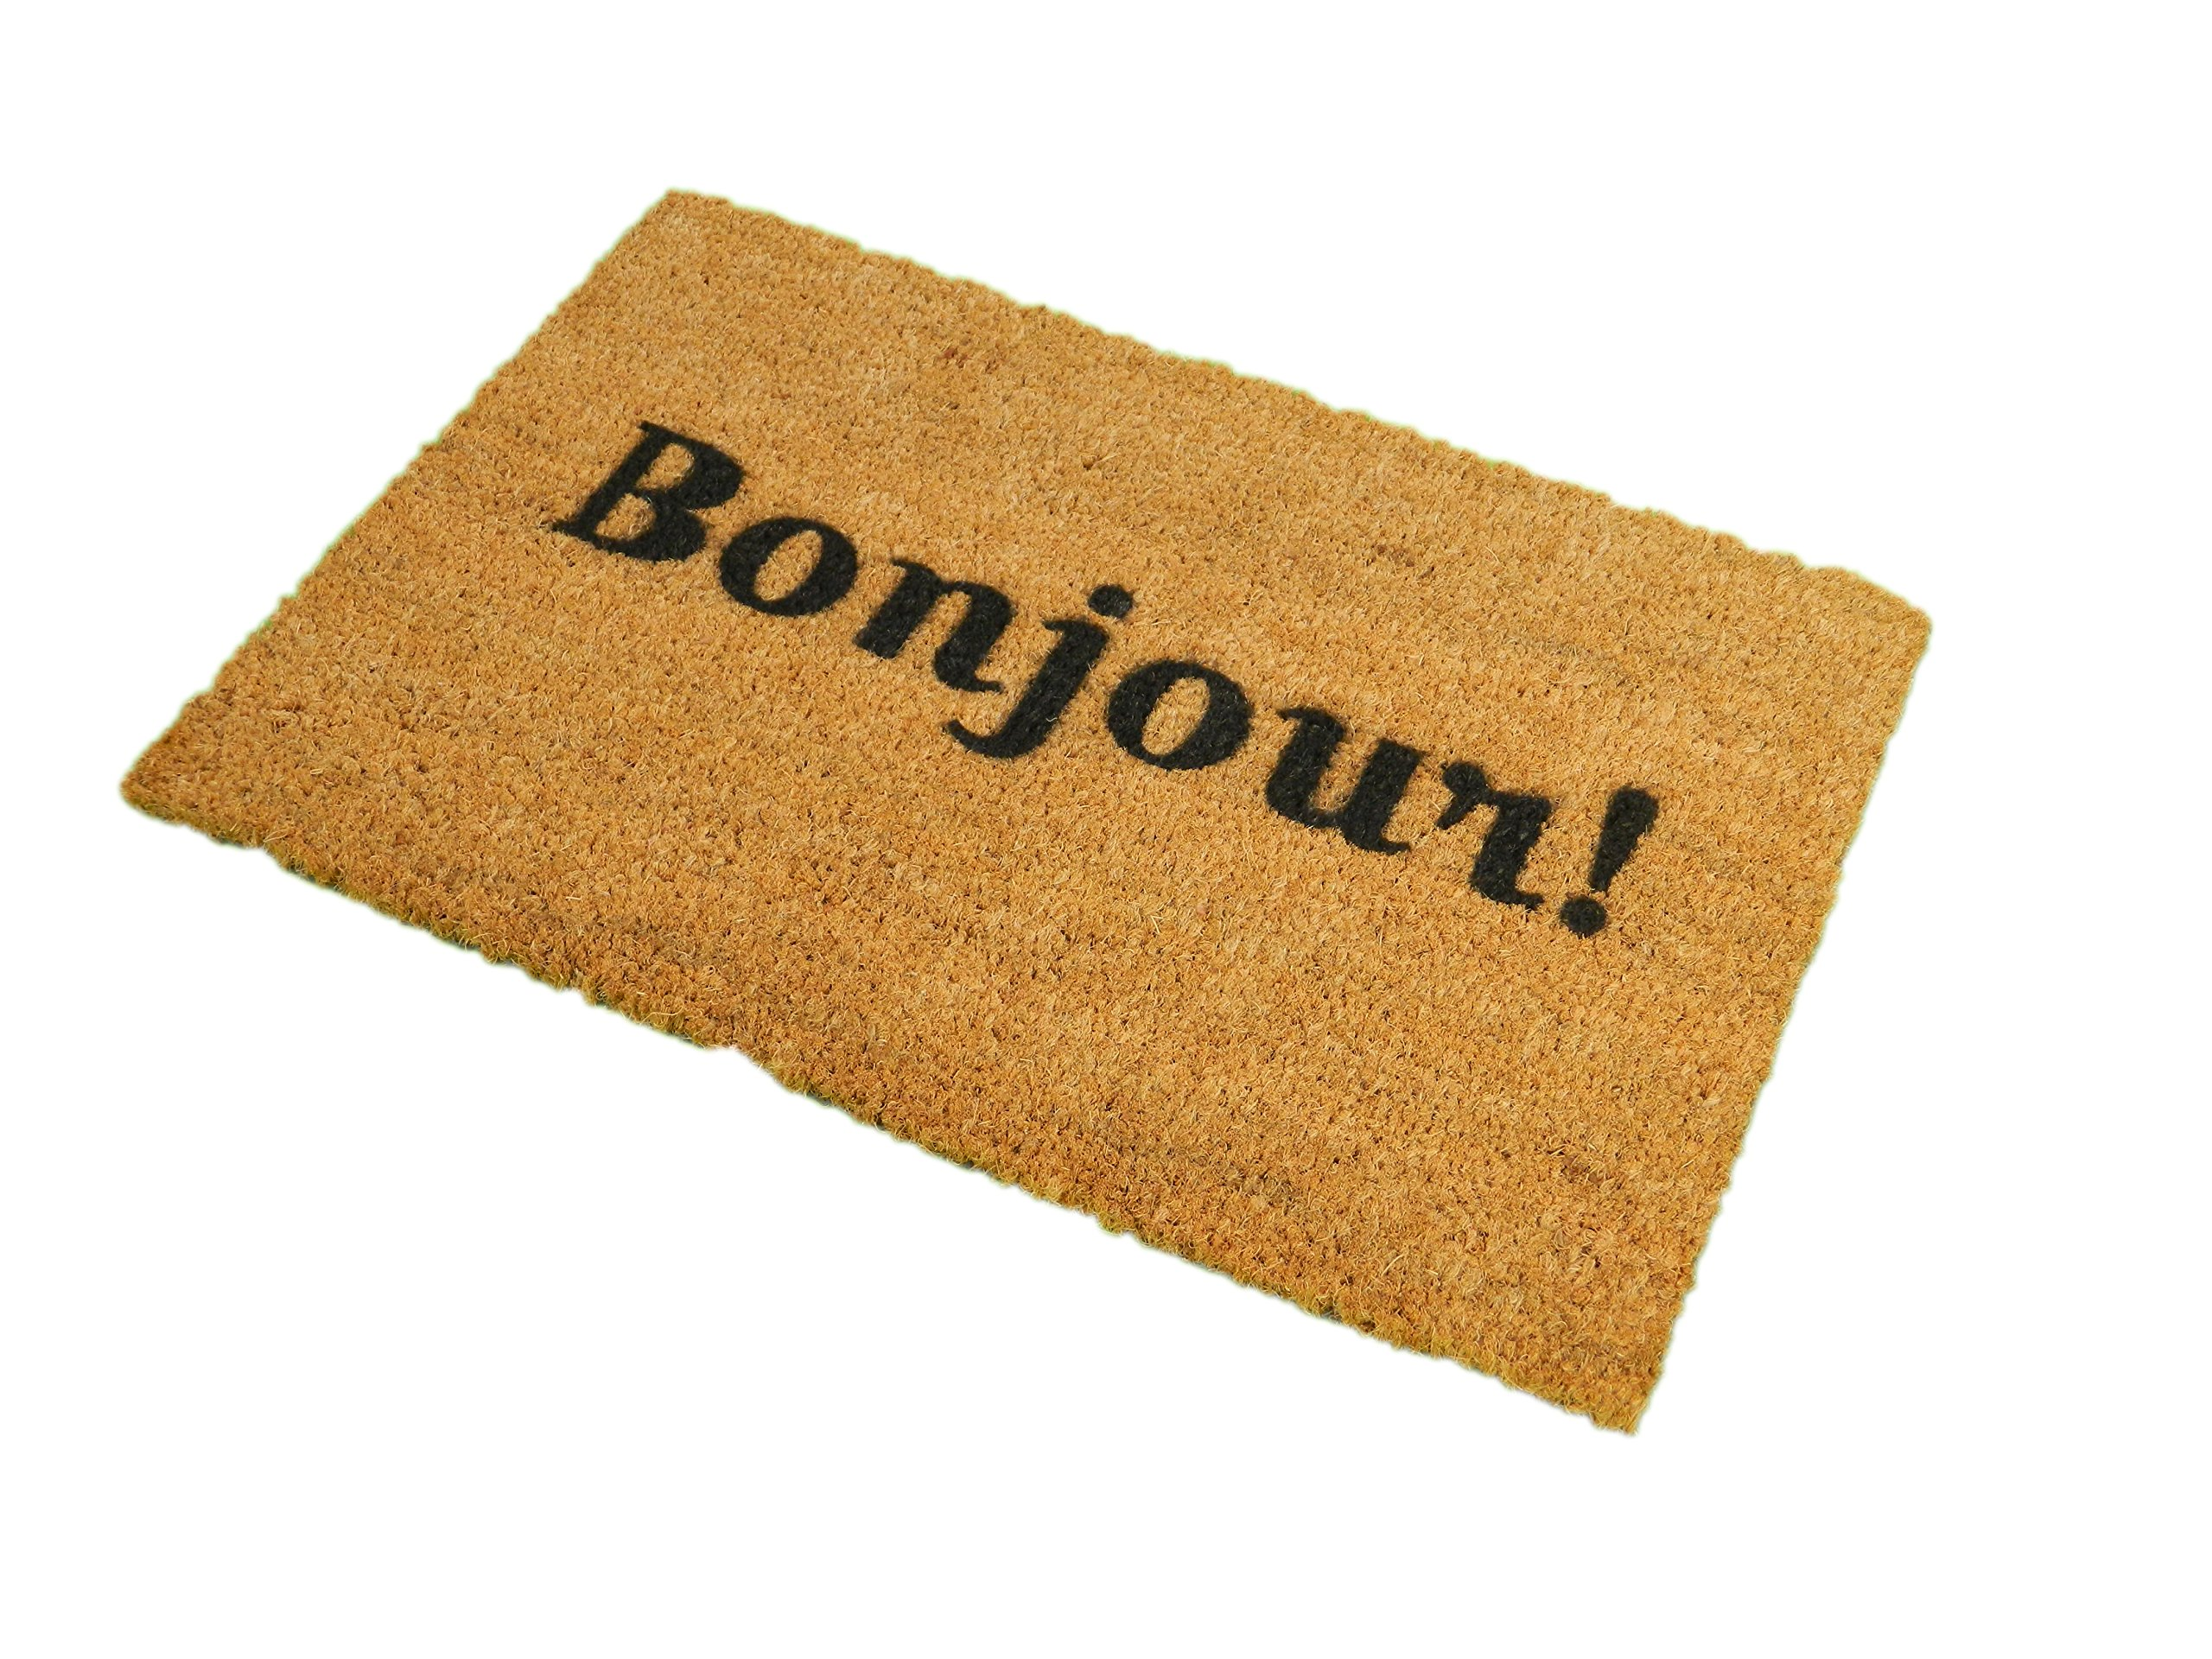 CKB Ltd Bonjour Novelty Doormat Unique Doormats Front/Back Door Mats Made With A Non-Slip Pvc Backing - Natural Coir - Indoor & Outdoor